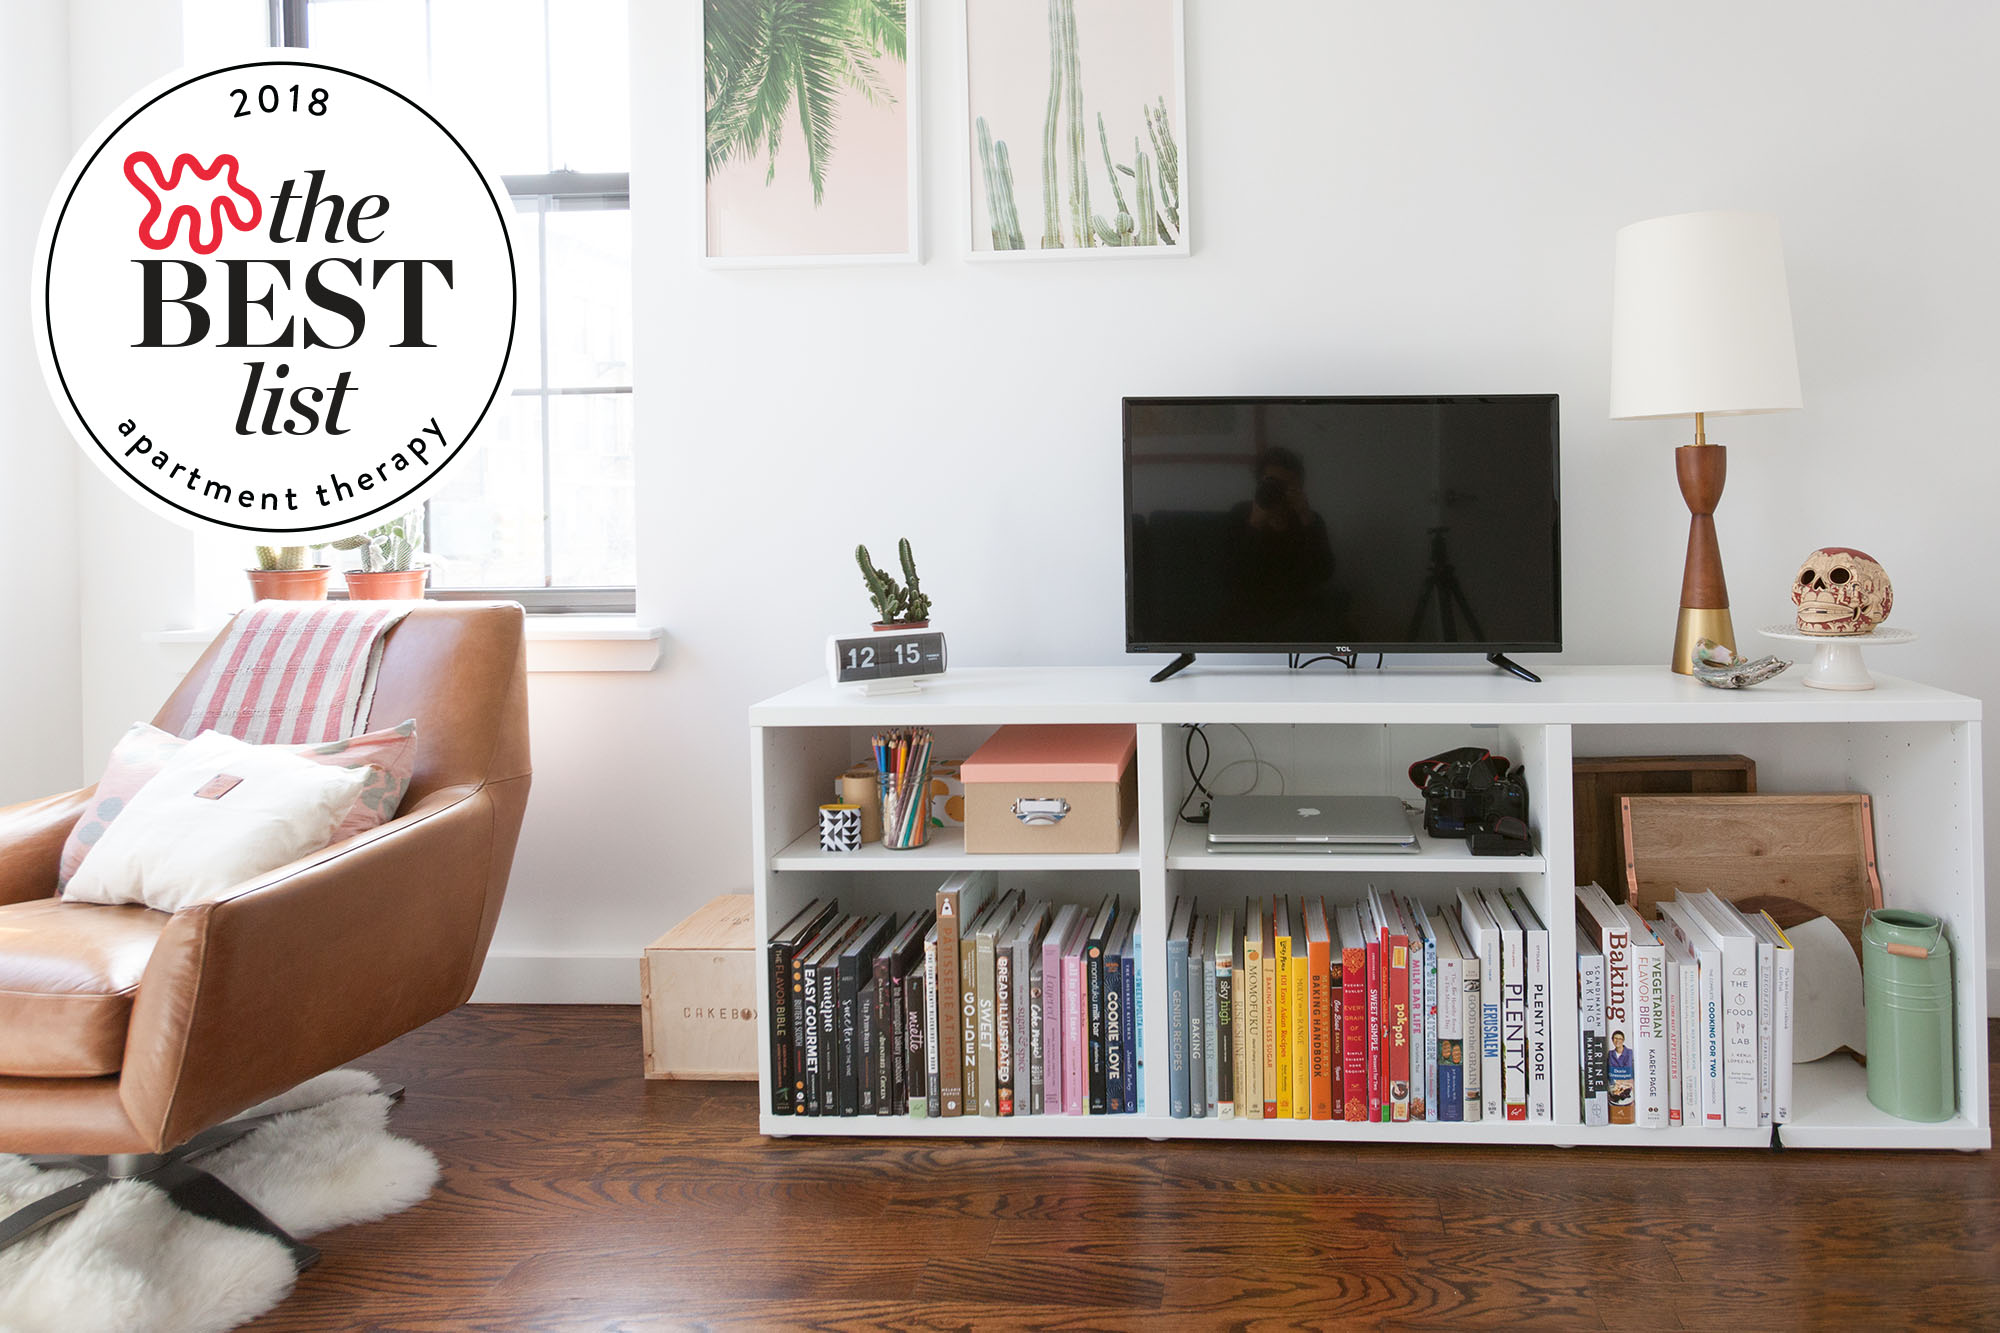 The Best Bookshelves And Bookcases To Buy In 2018